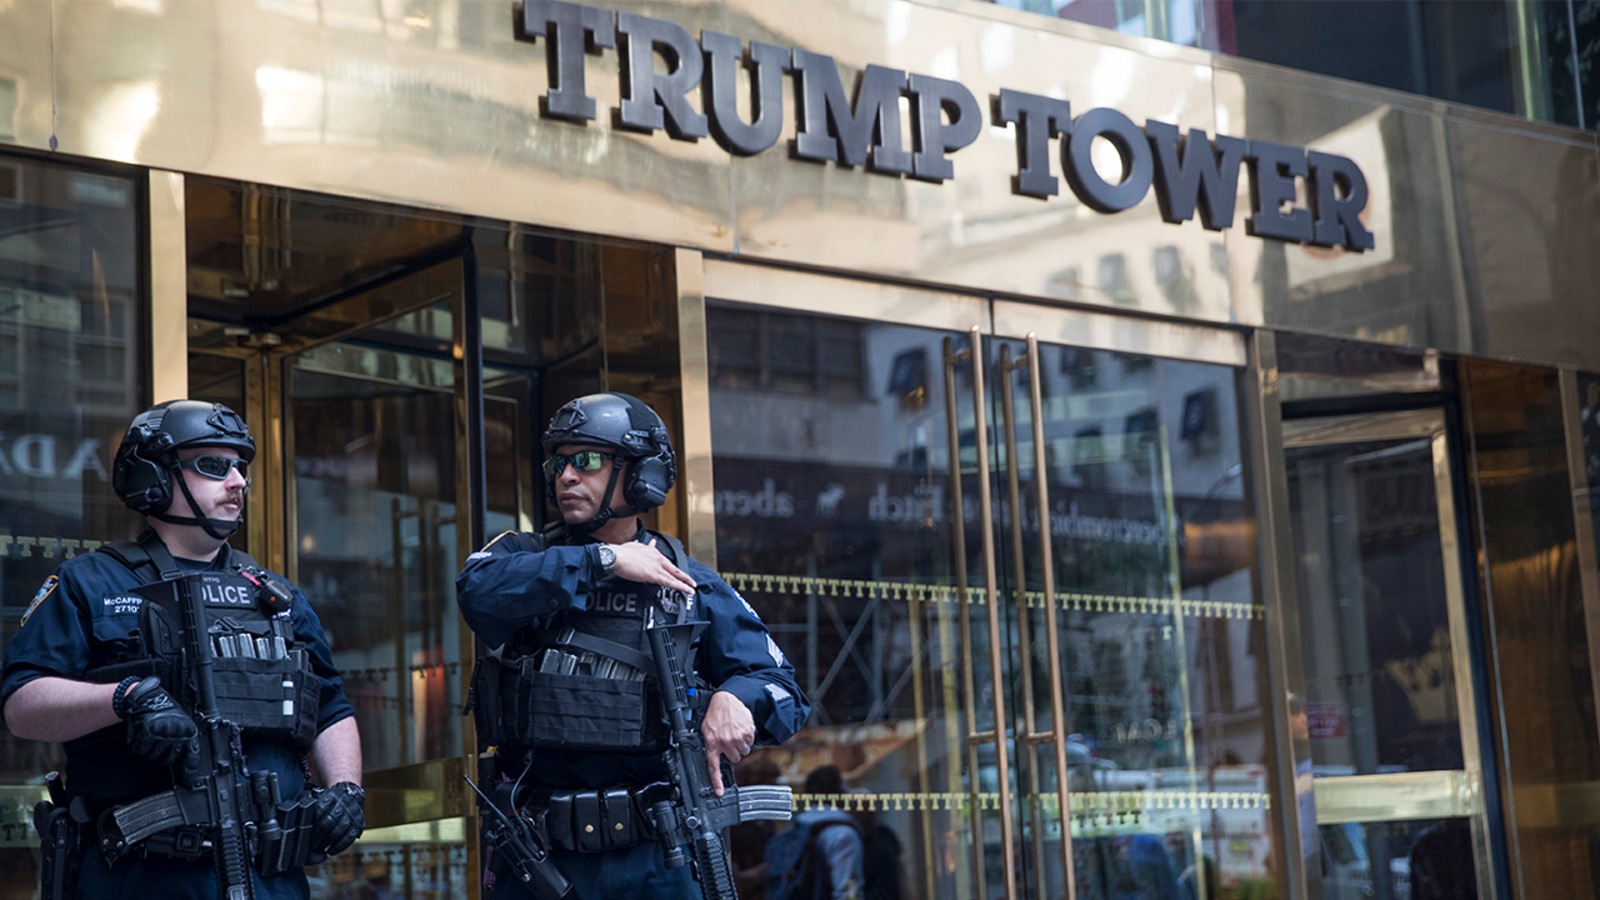 NJ man arrested on terror charges, allegedly wanted to bomb Trump Tower